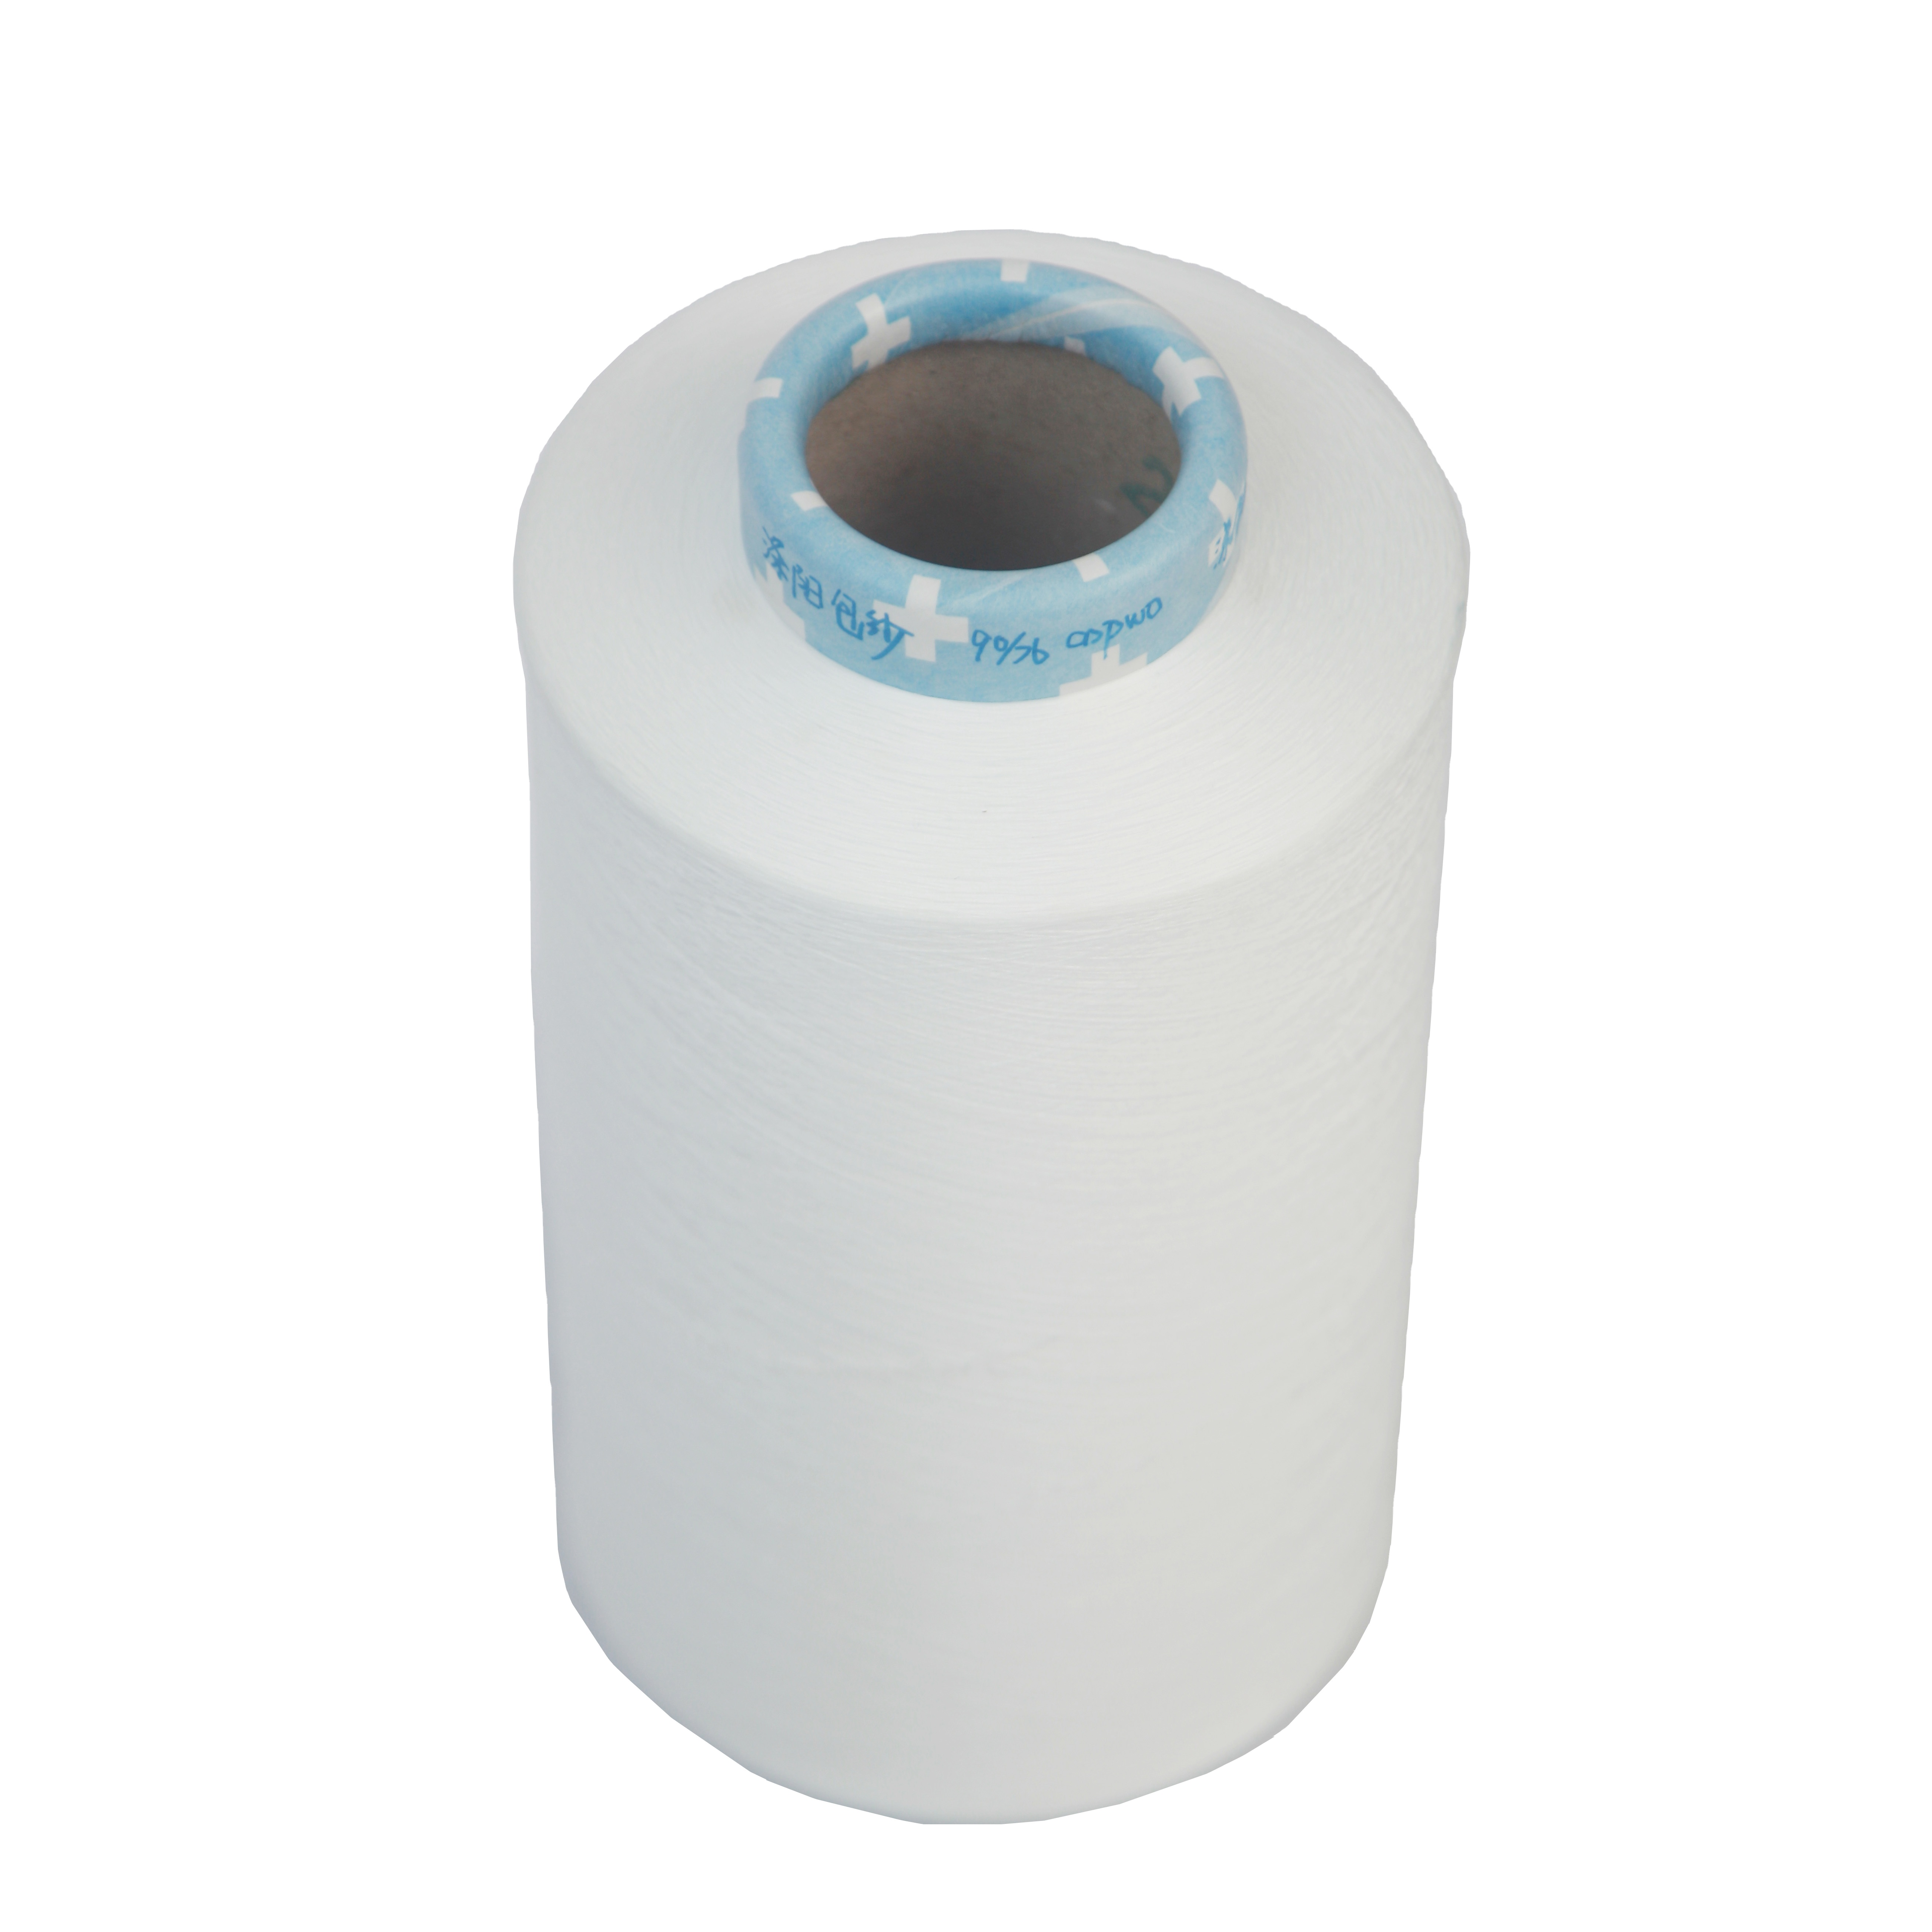 Recycled GRS certified regenerated 50d70d100d recycled polyester yarn